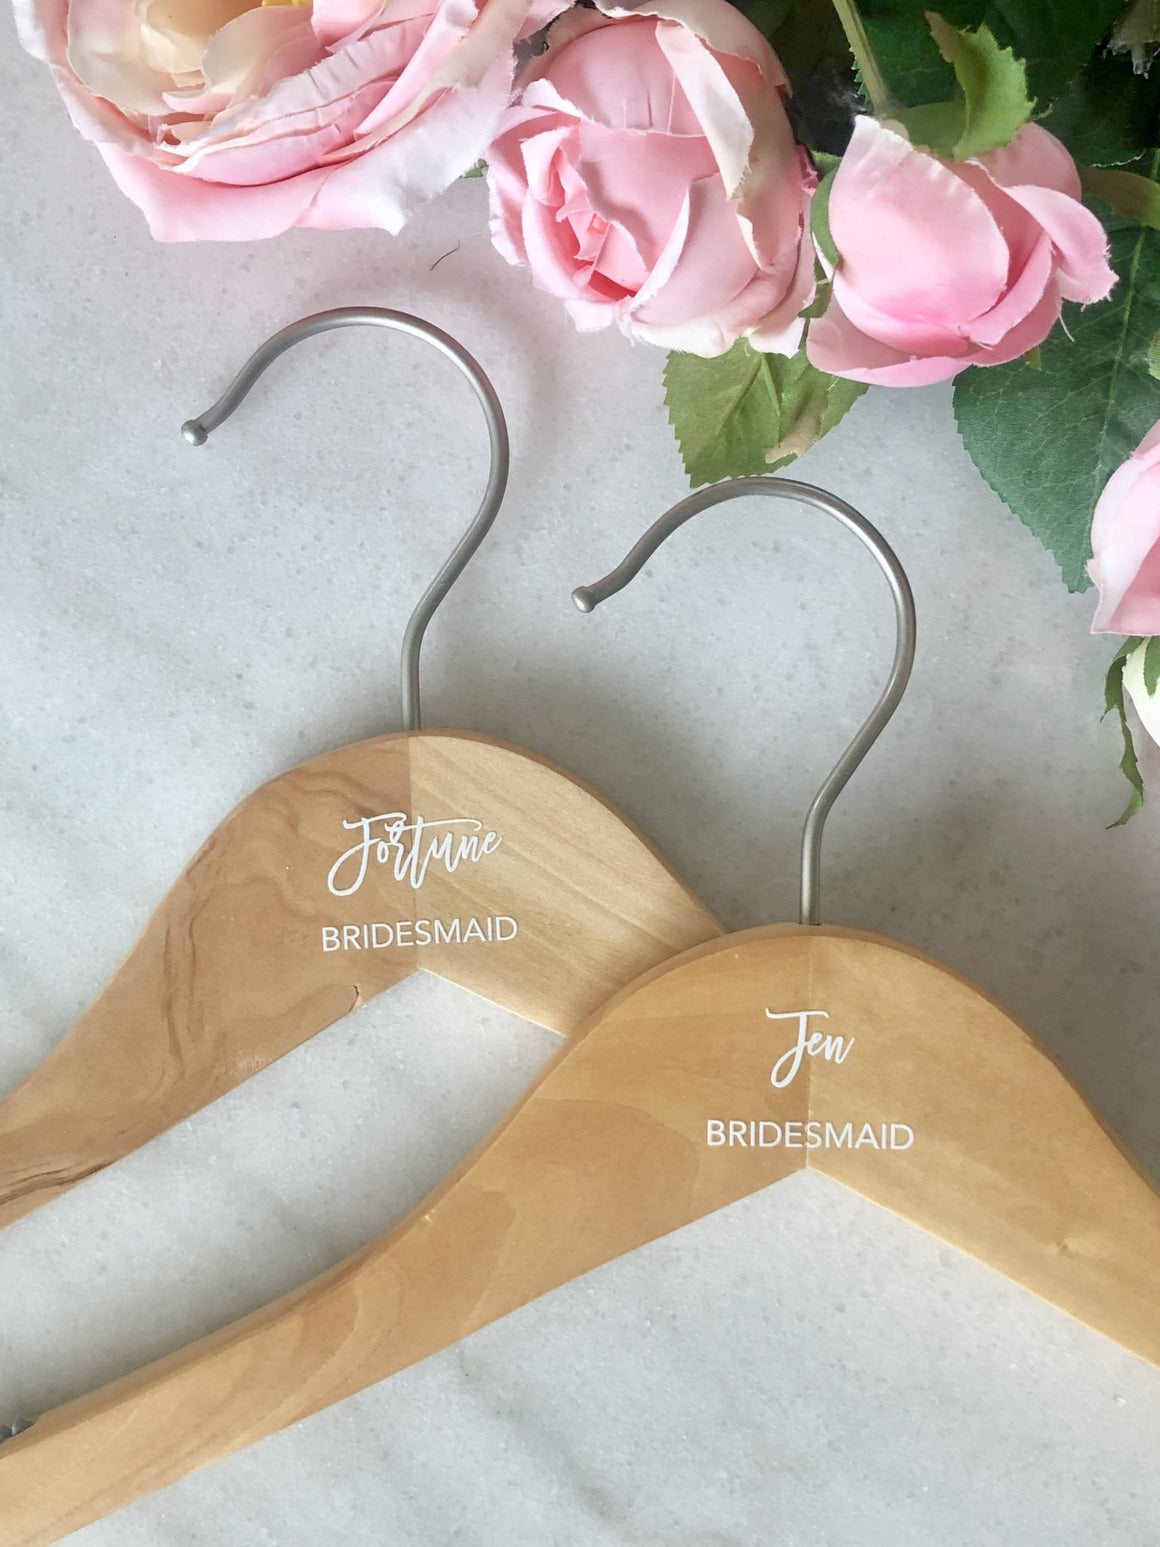 Personalized Bridal Party Hangers - Pretty Collected